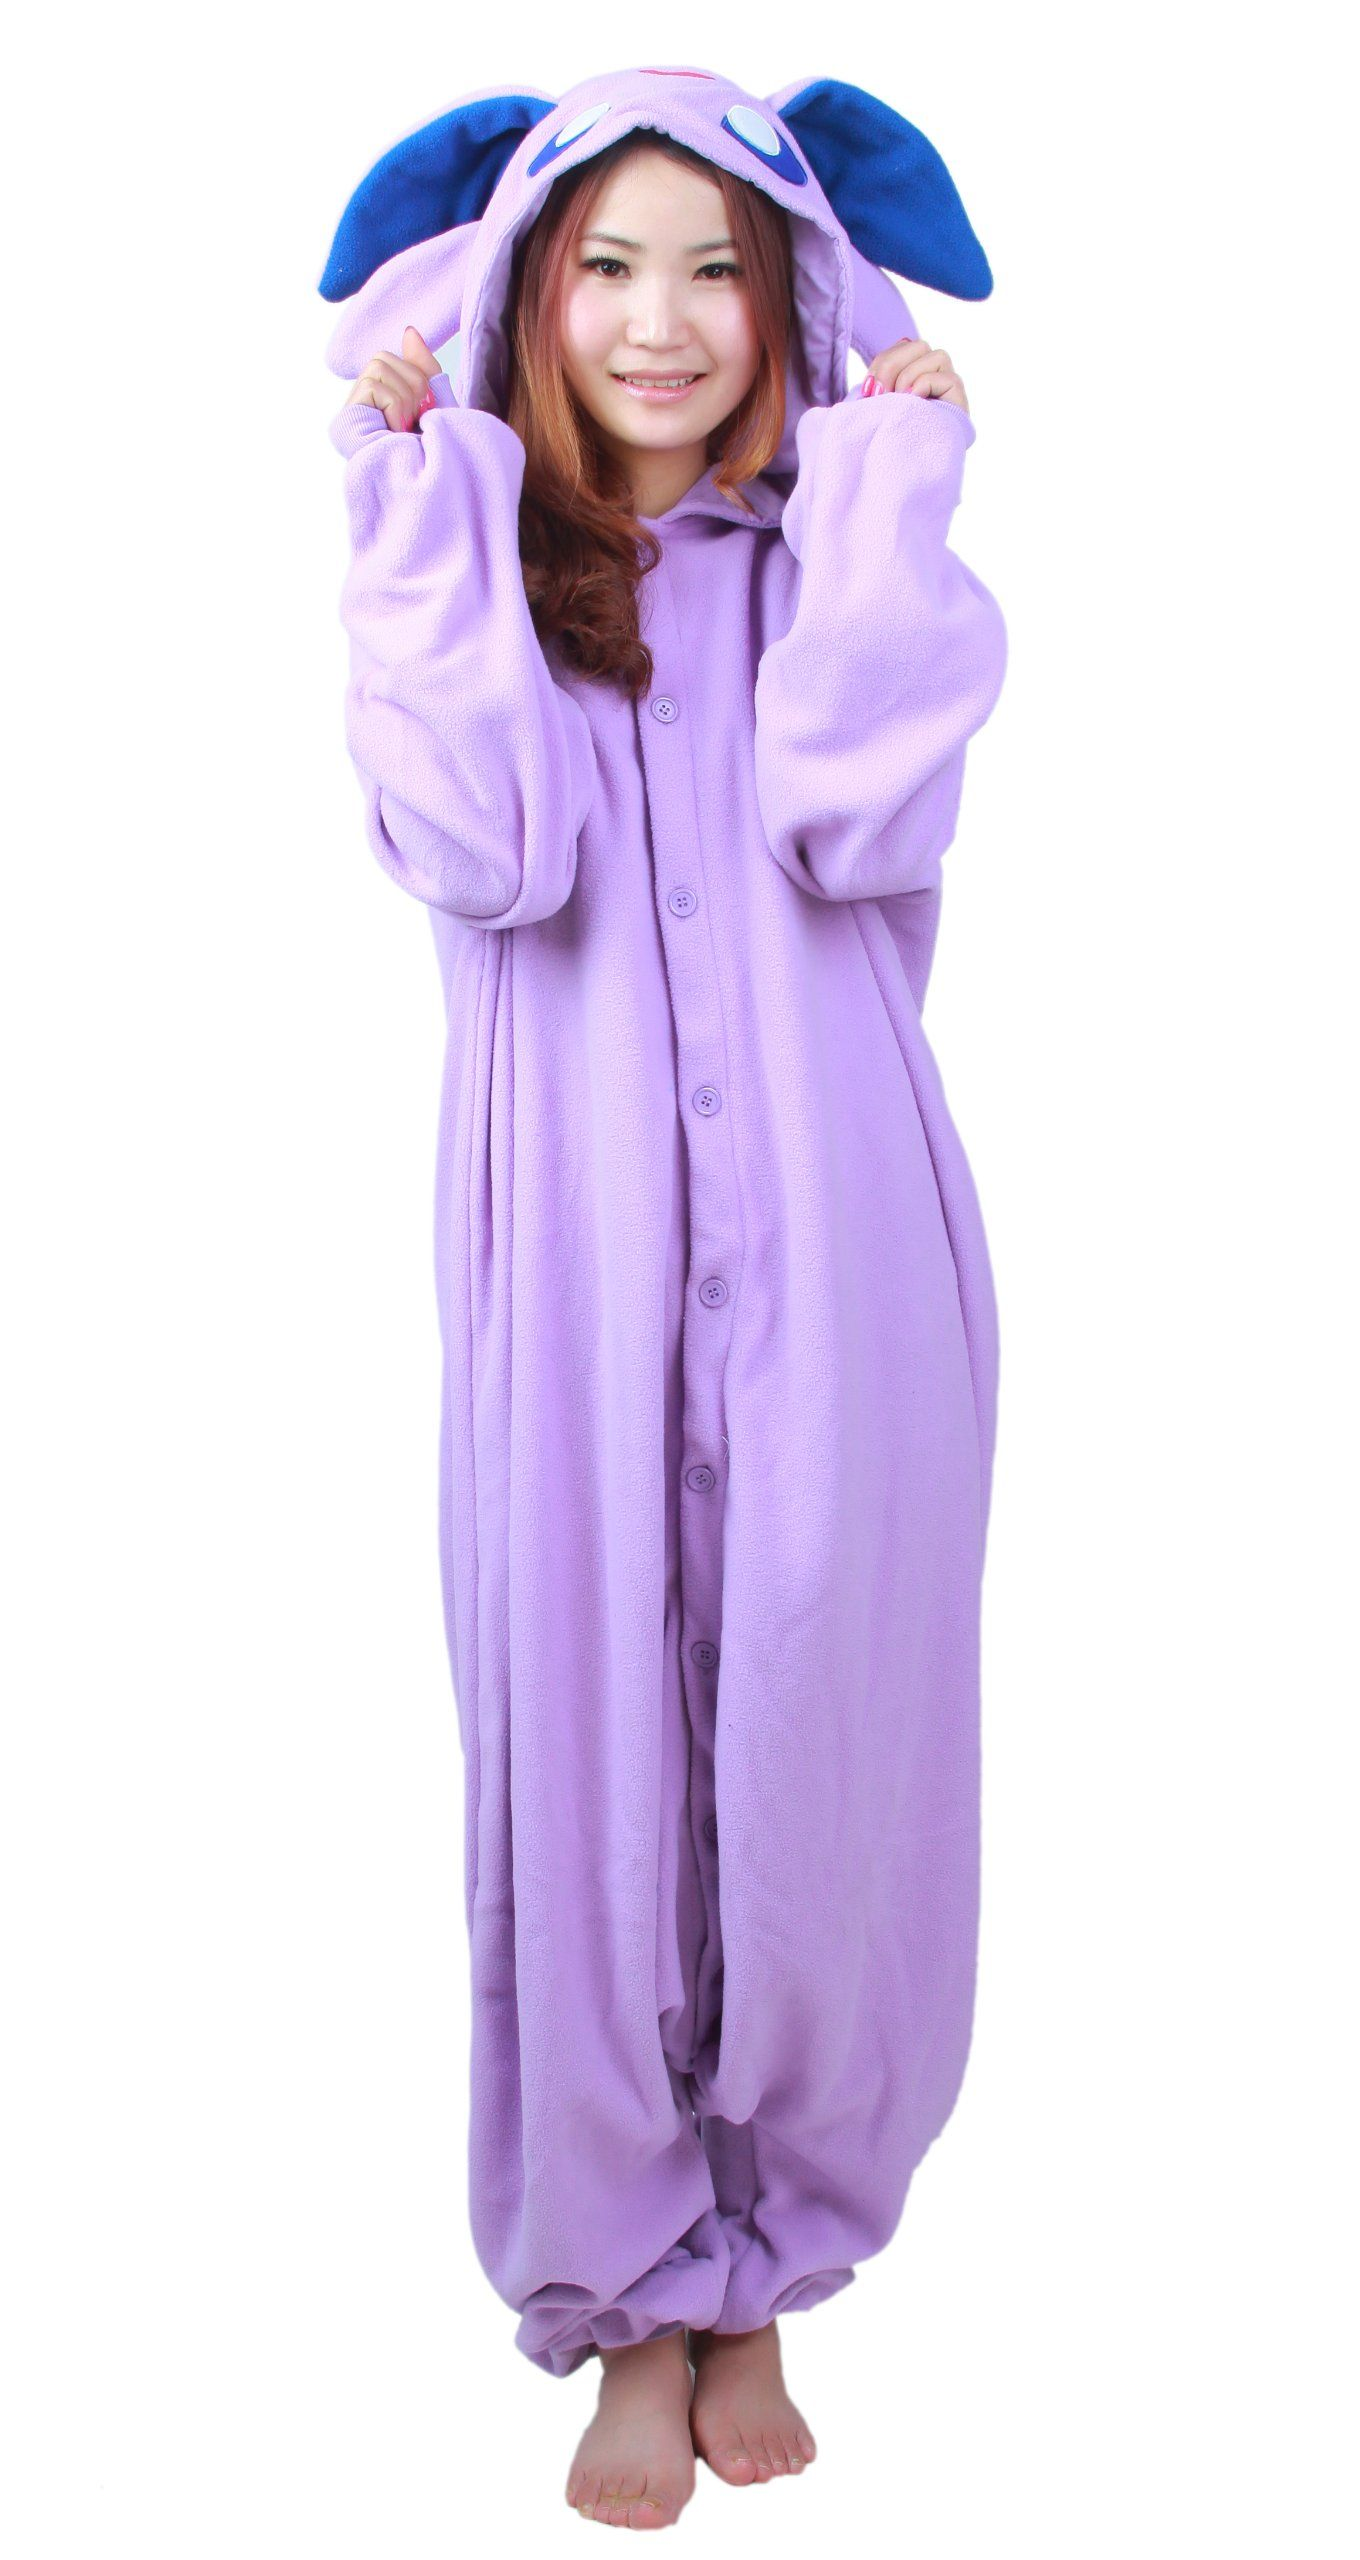 bcf69cec094e Amazon.com  Purple Pokemon Espeon Kigurumi Costume  Clothing ...